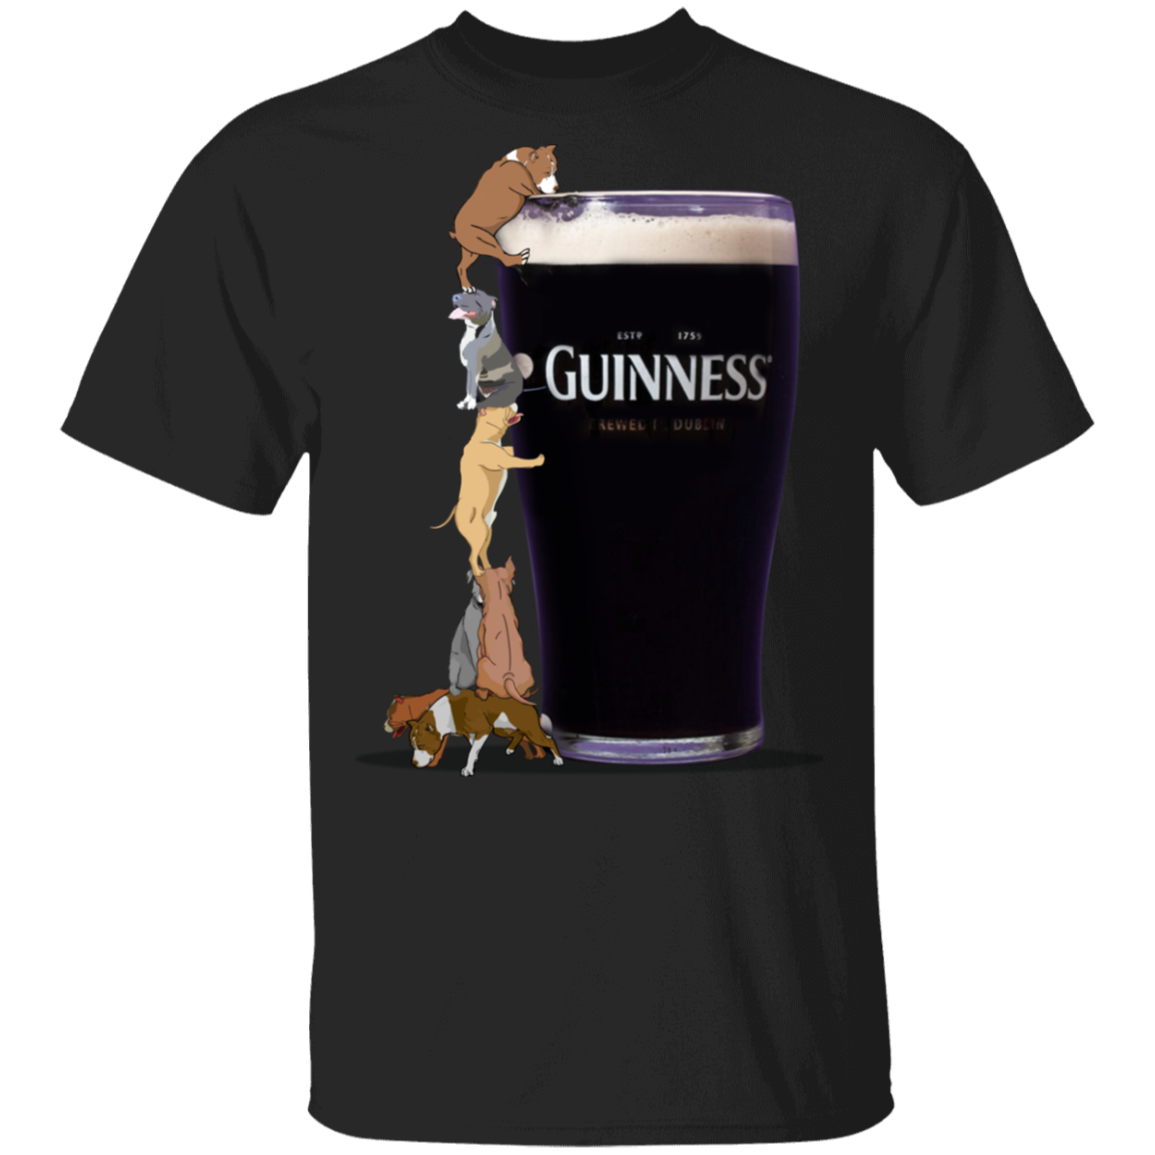 Pit Bull T-Shirt Estd 1759 Guinness Brewed In Dublin Shirt Gift For Beer Lover